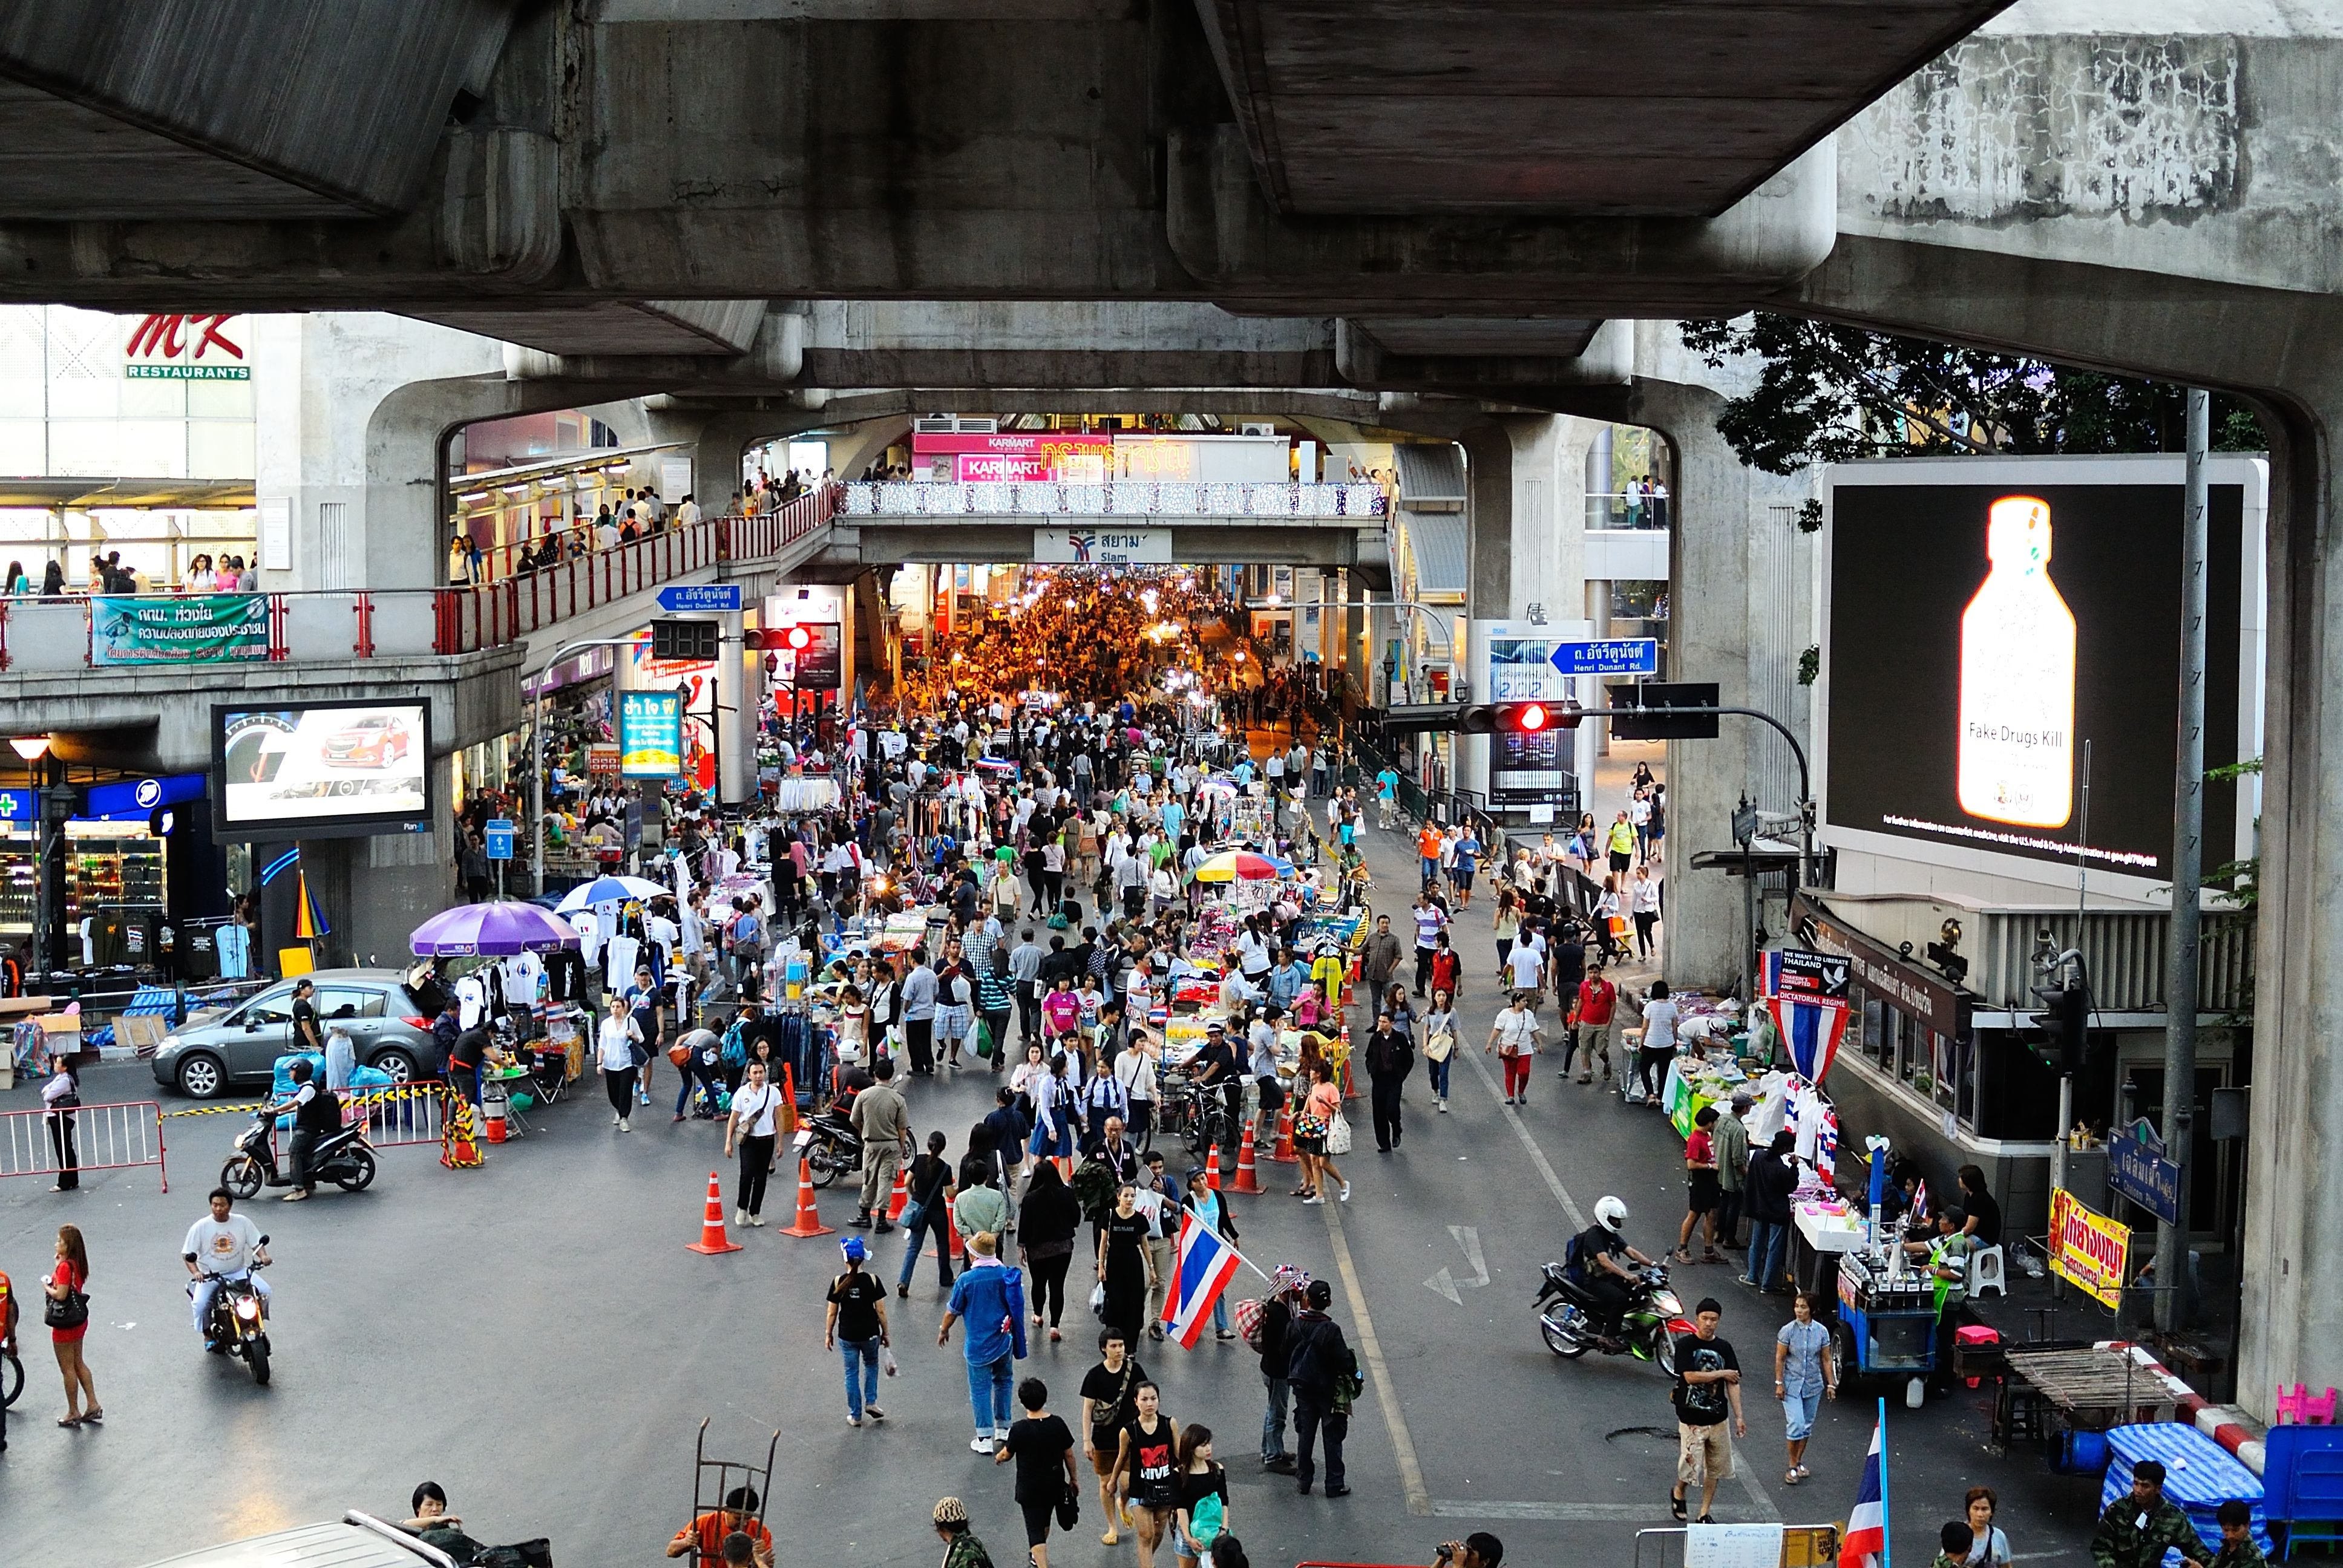 MBK Center in Bangkok: 10 Things to Know